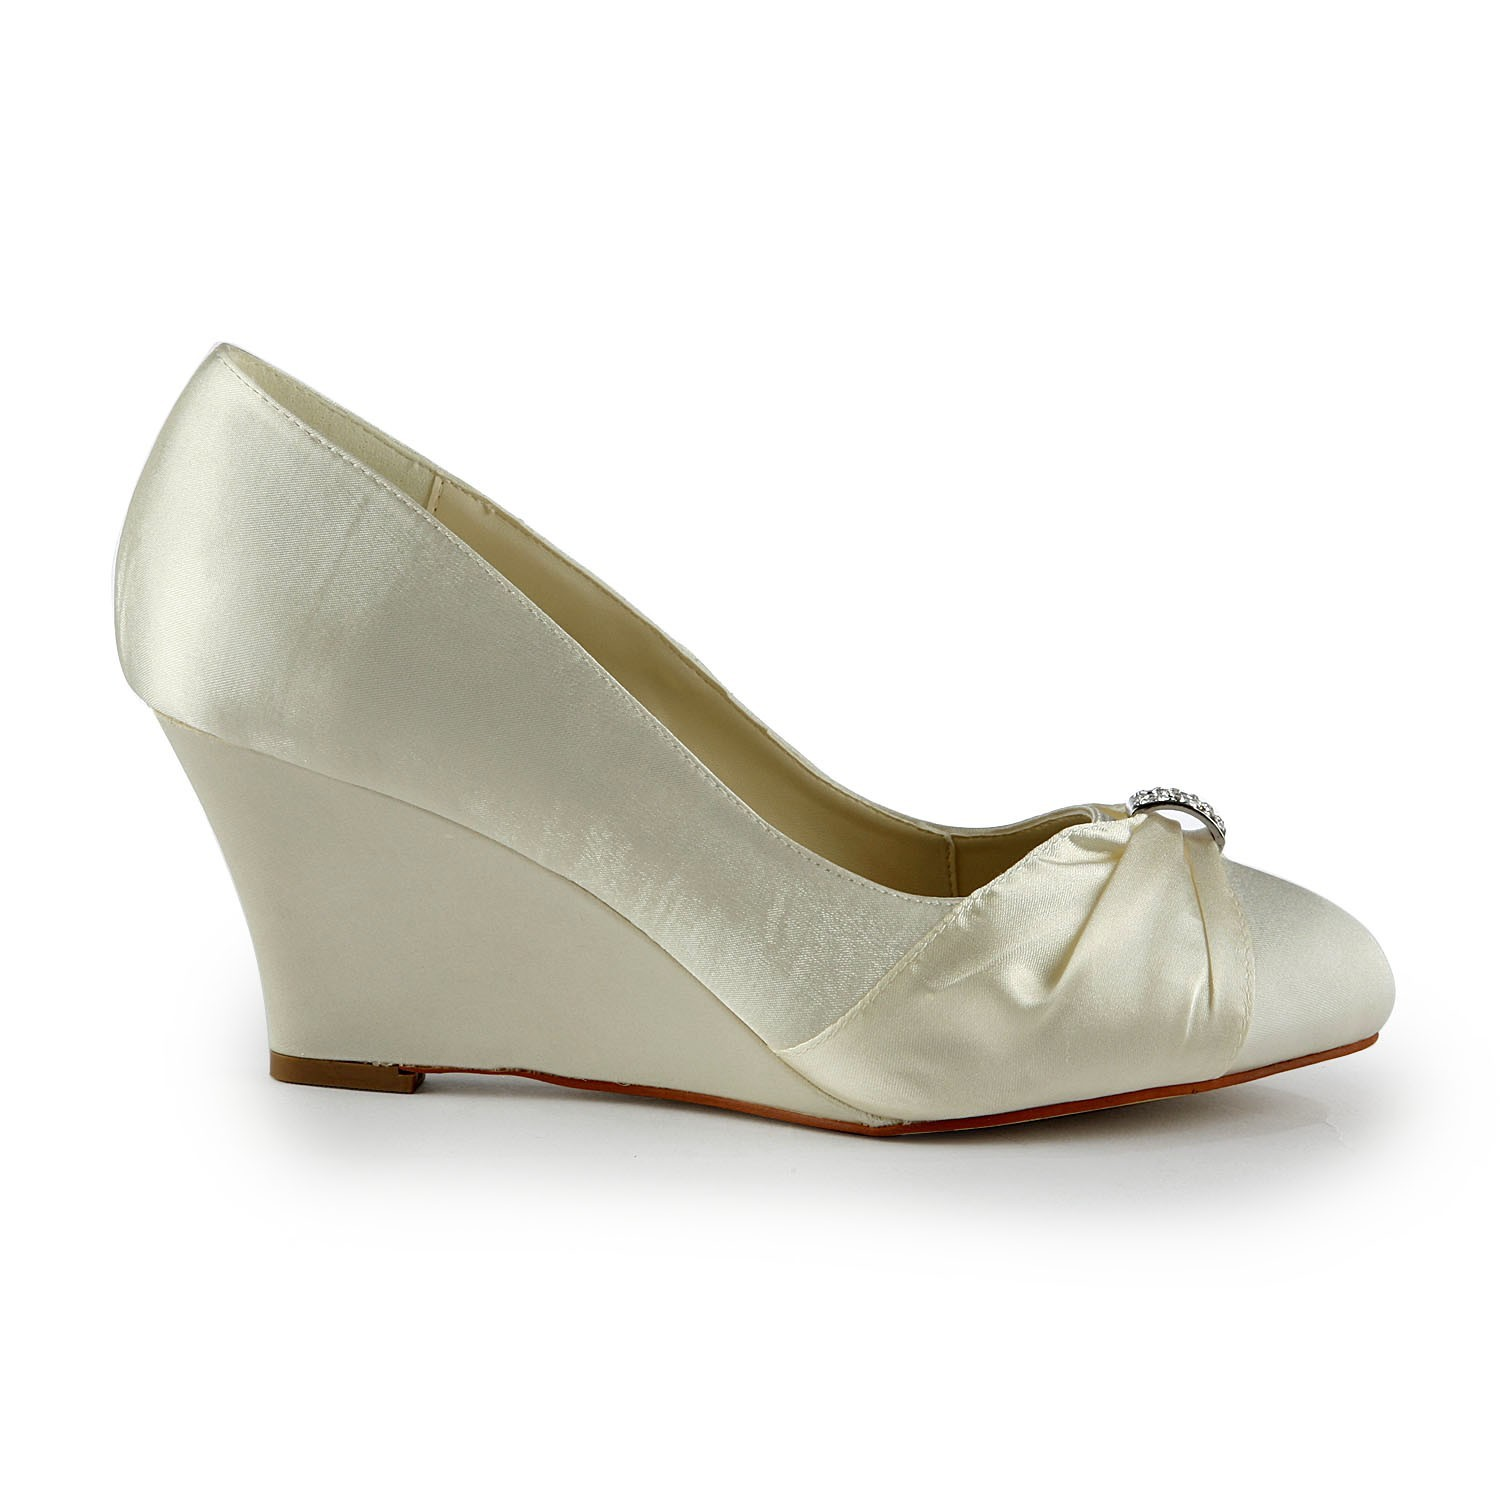 Wedge Heel Shoes For Wedding: Women's Satin Wedge Heel Wedges With Rhinestone Wedding